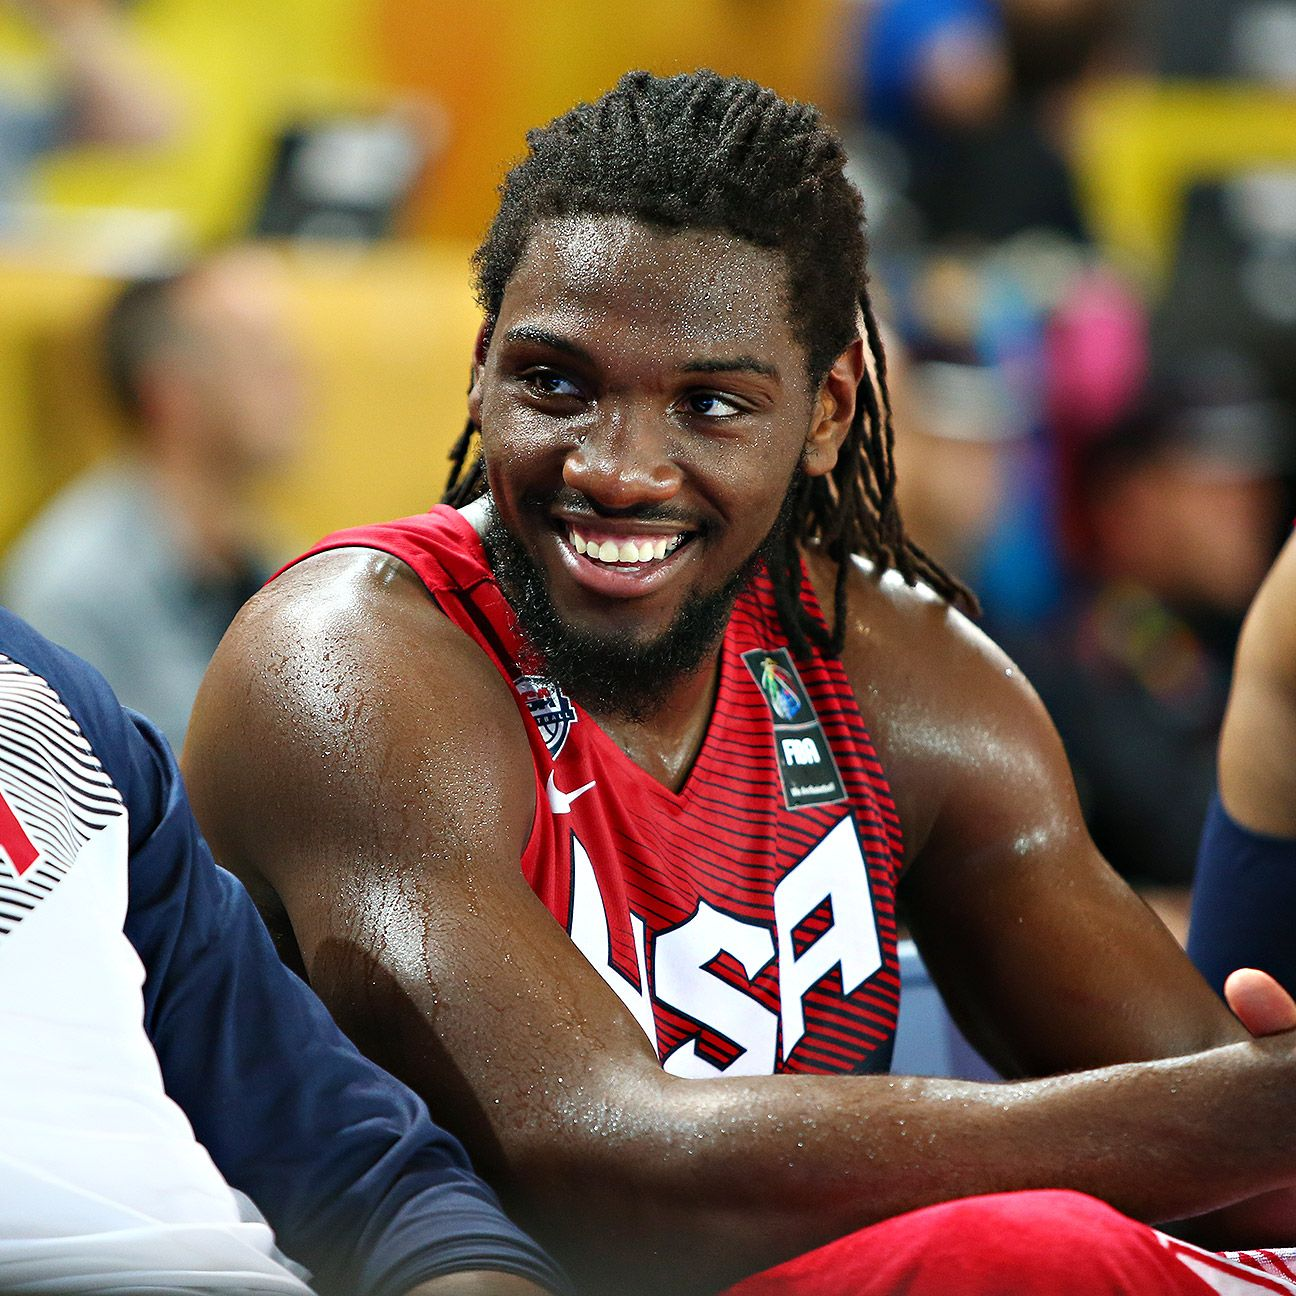 Will Kenneth Faried Be Able To Maintain Production For